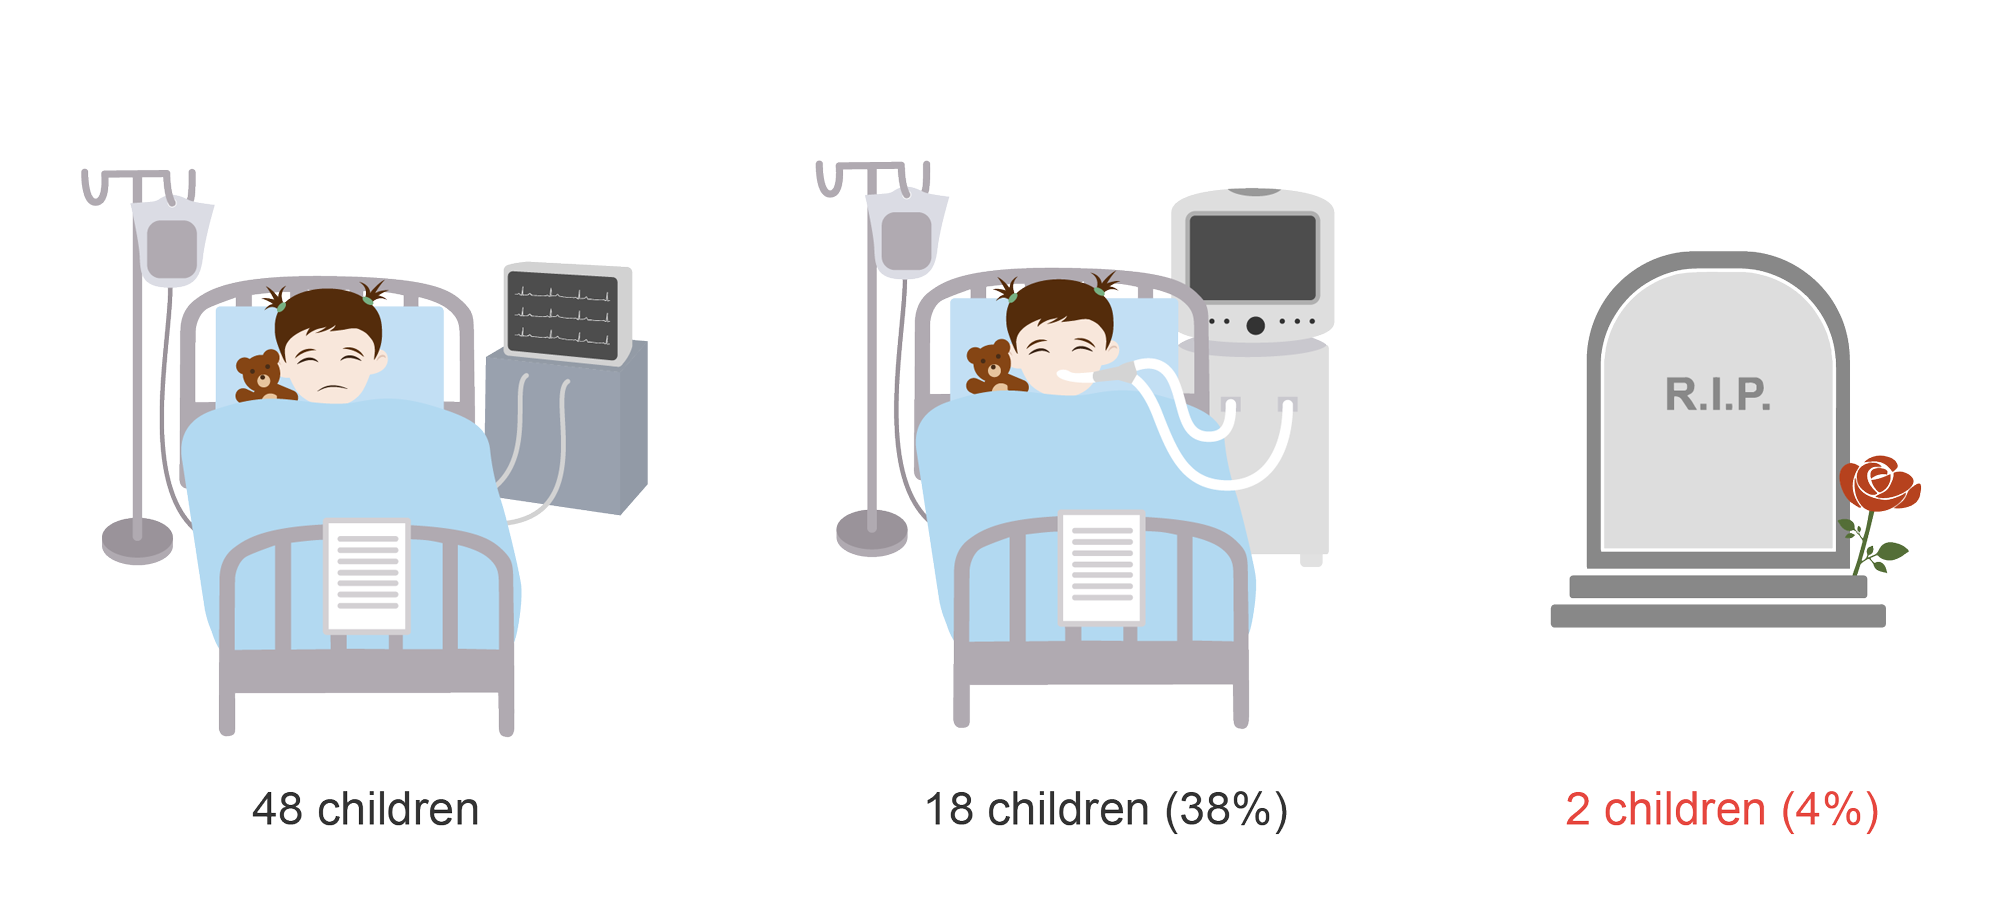 Case fatatlity rate for hospitalized children with COVID 19. Cartoon.